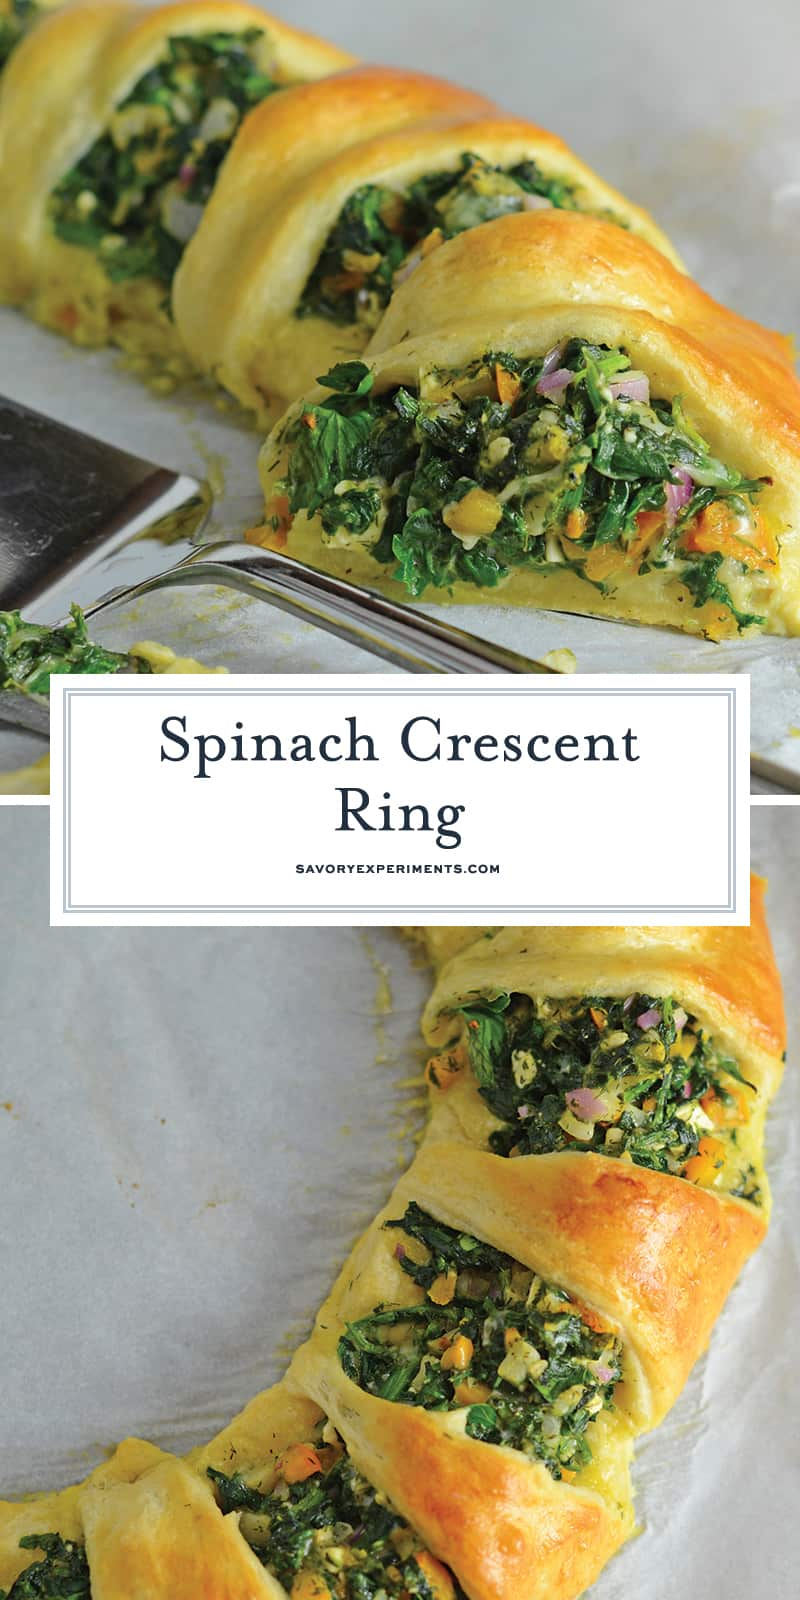 Spinach Crescent Ring is an easy brunch idea or appetizer recipe using spinach, bell pepper, onion, herbs and cheese. It is a hit at all of my parties! #crescentrollrecipes #appetizerideas #brunchrecipes www.savoryexperiments.com